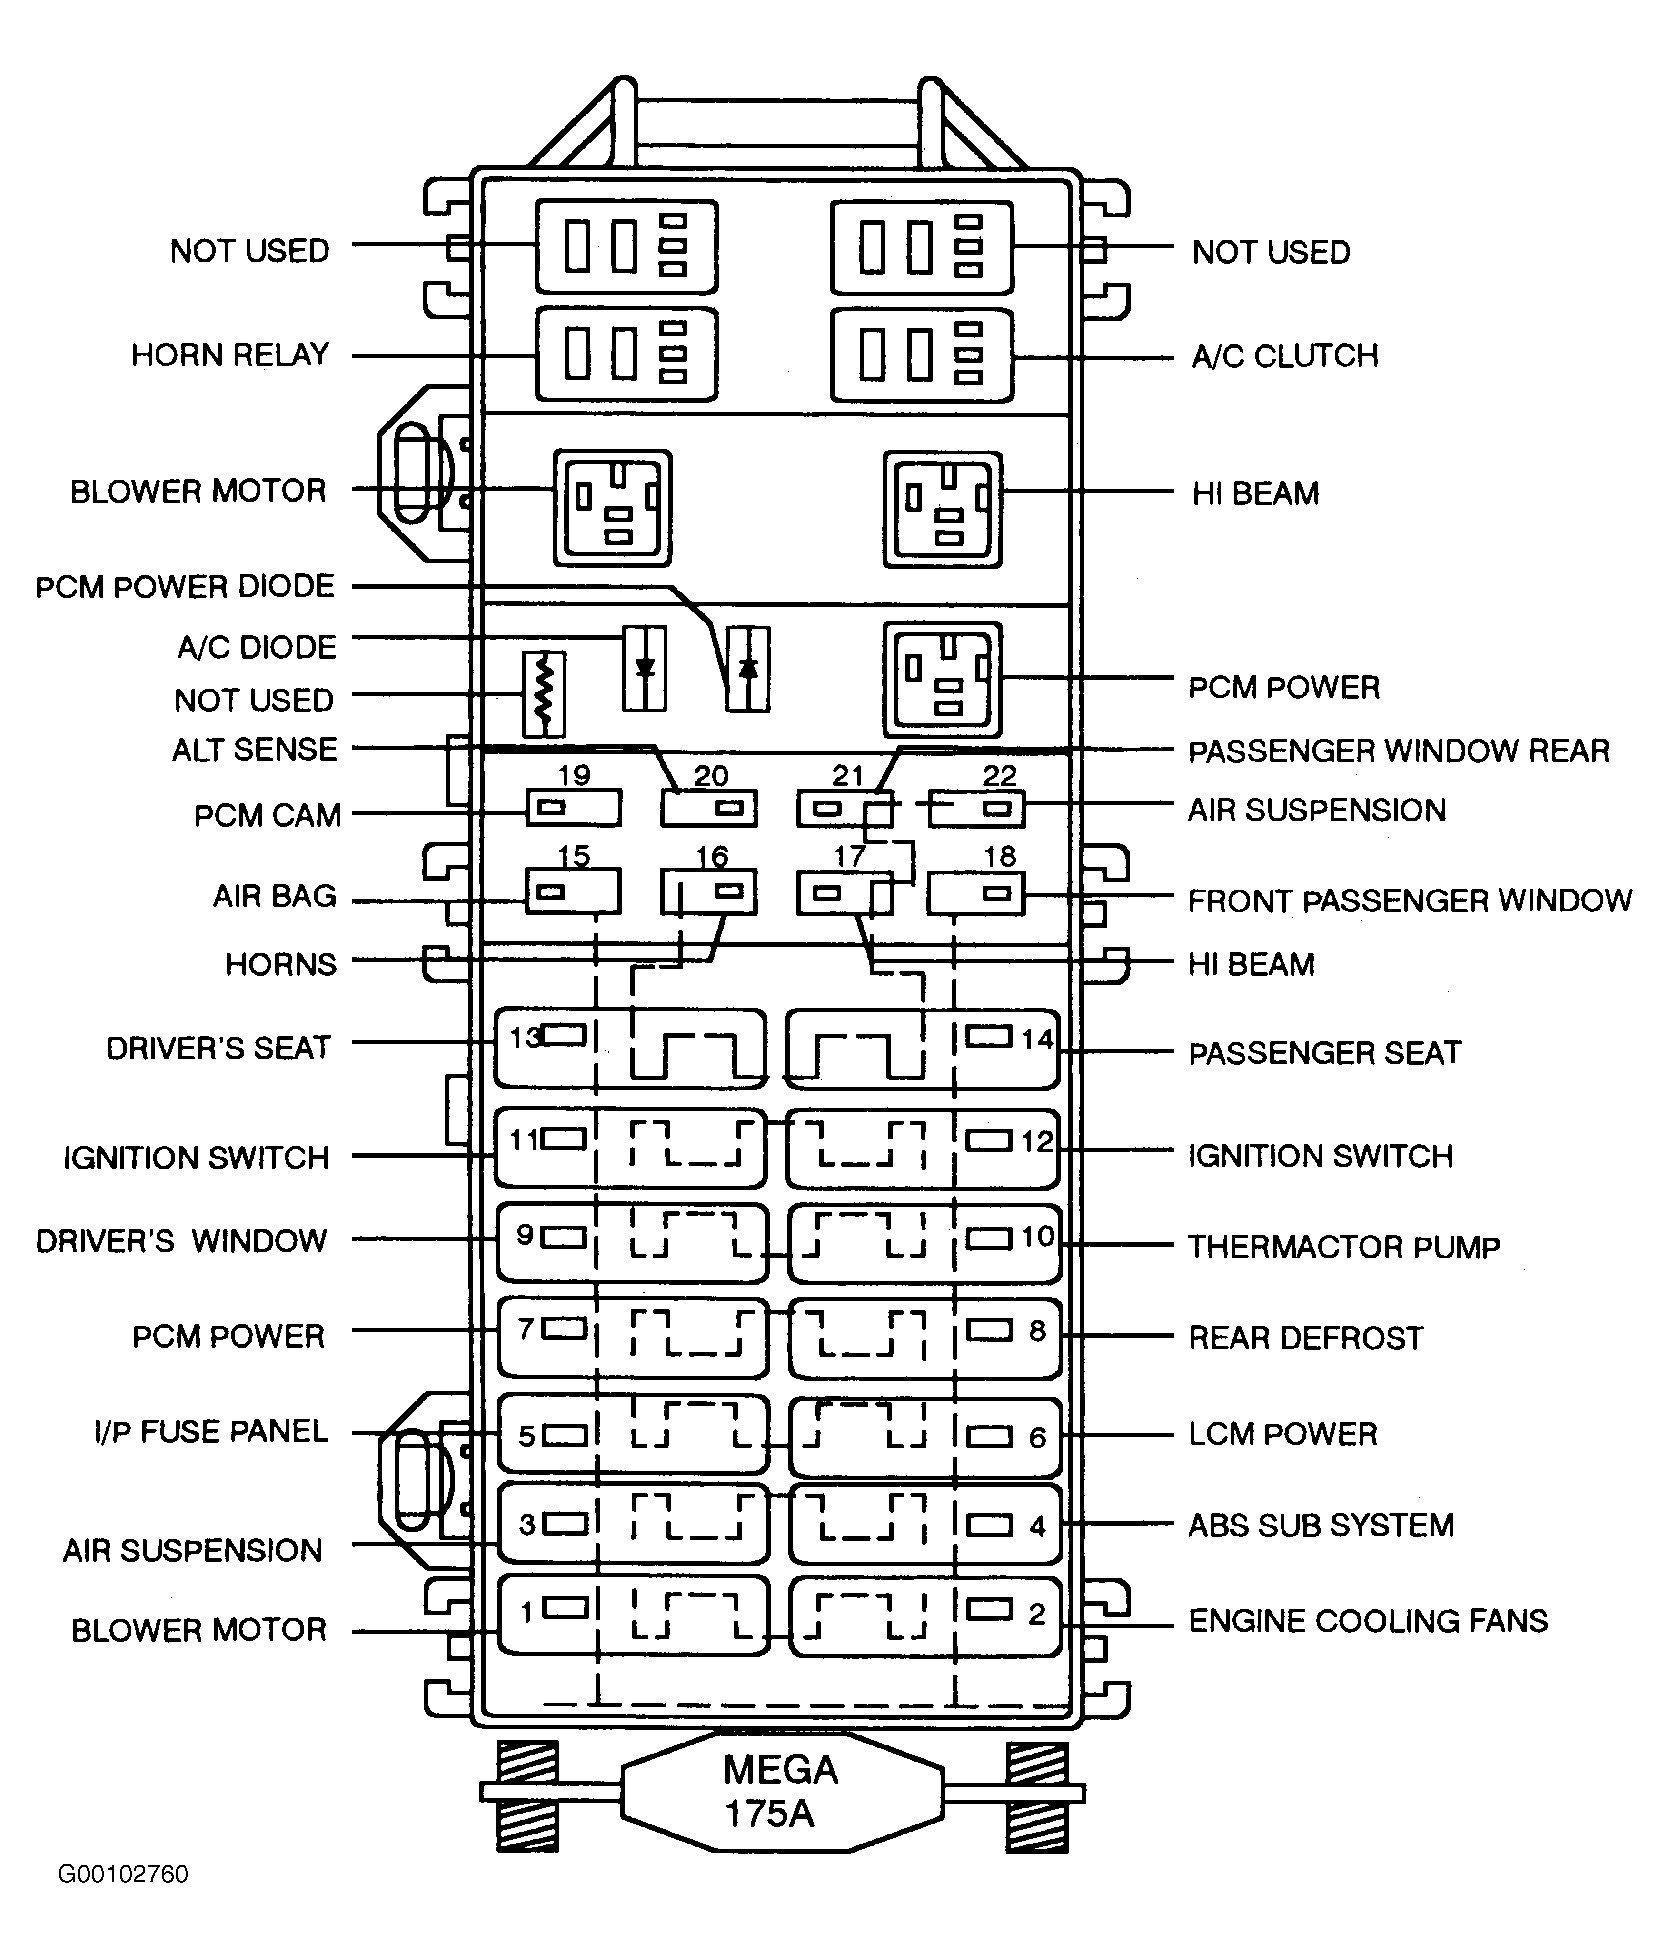 hight resolution of 03 lincoln town car fuse box wiring diagram list2003 lincoln fuse box wiring diagram toolbox 03